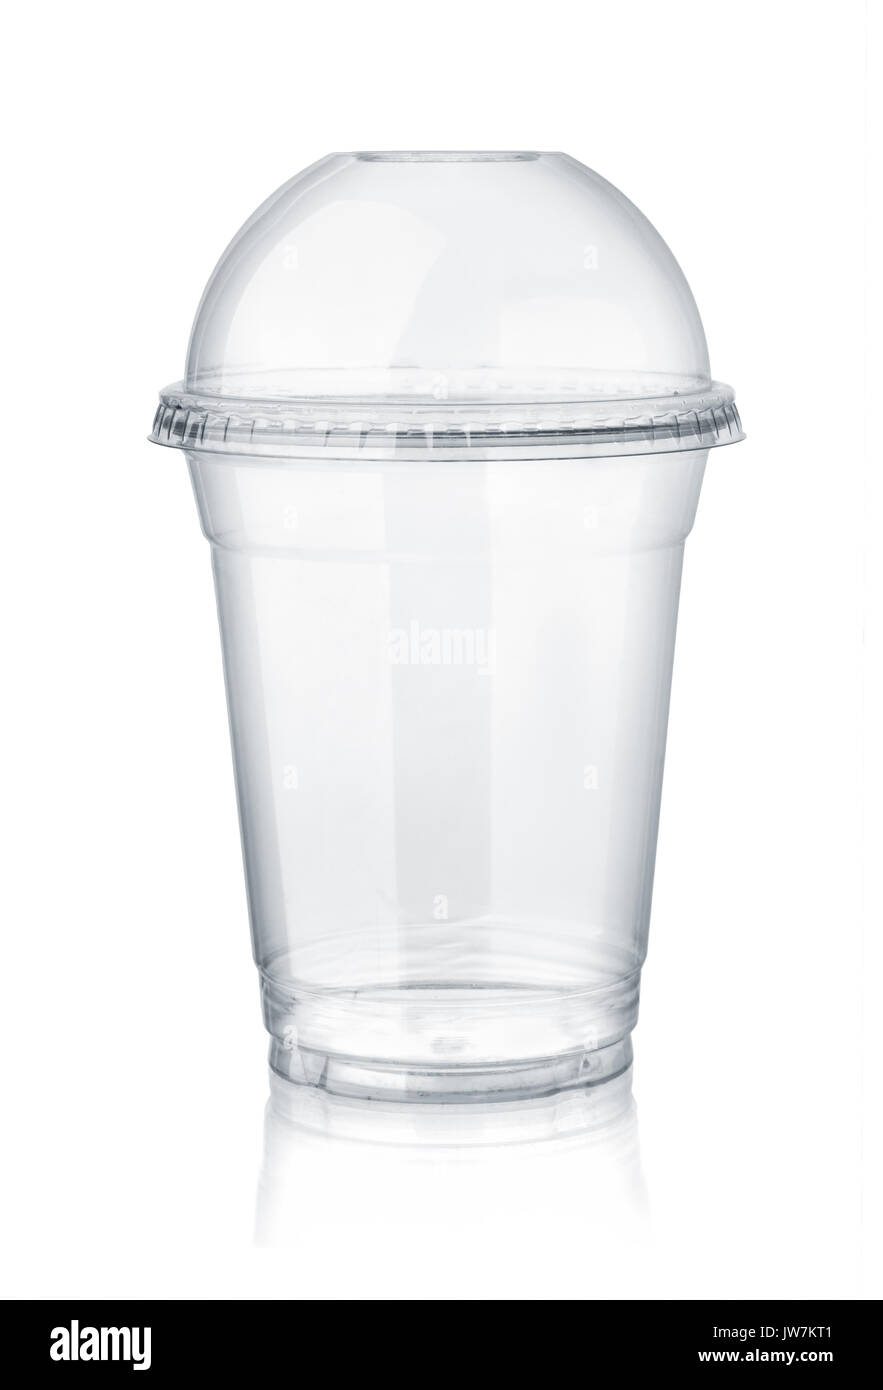 Plastic clear cup with dome lid isolated on white - Stock Image